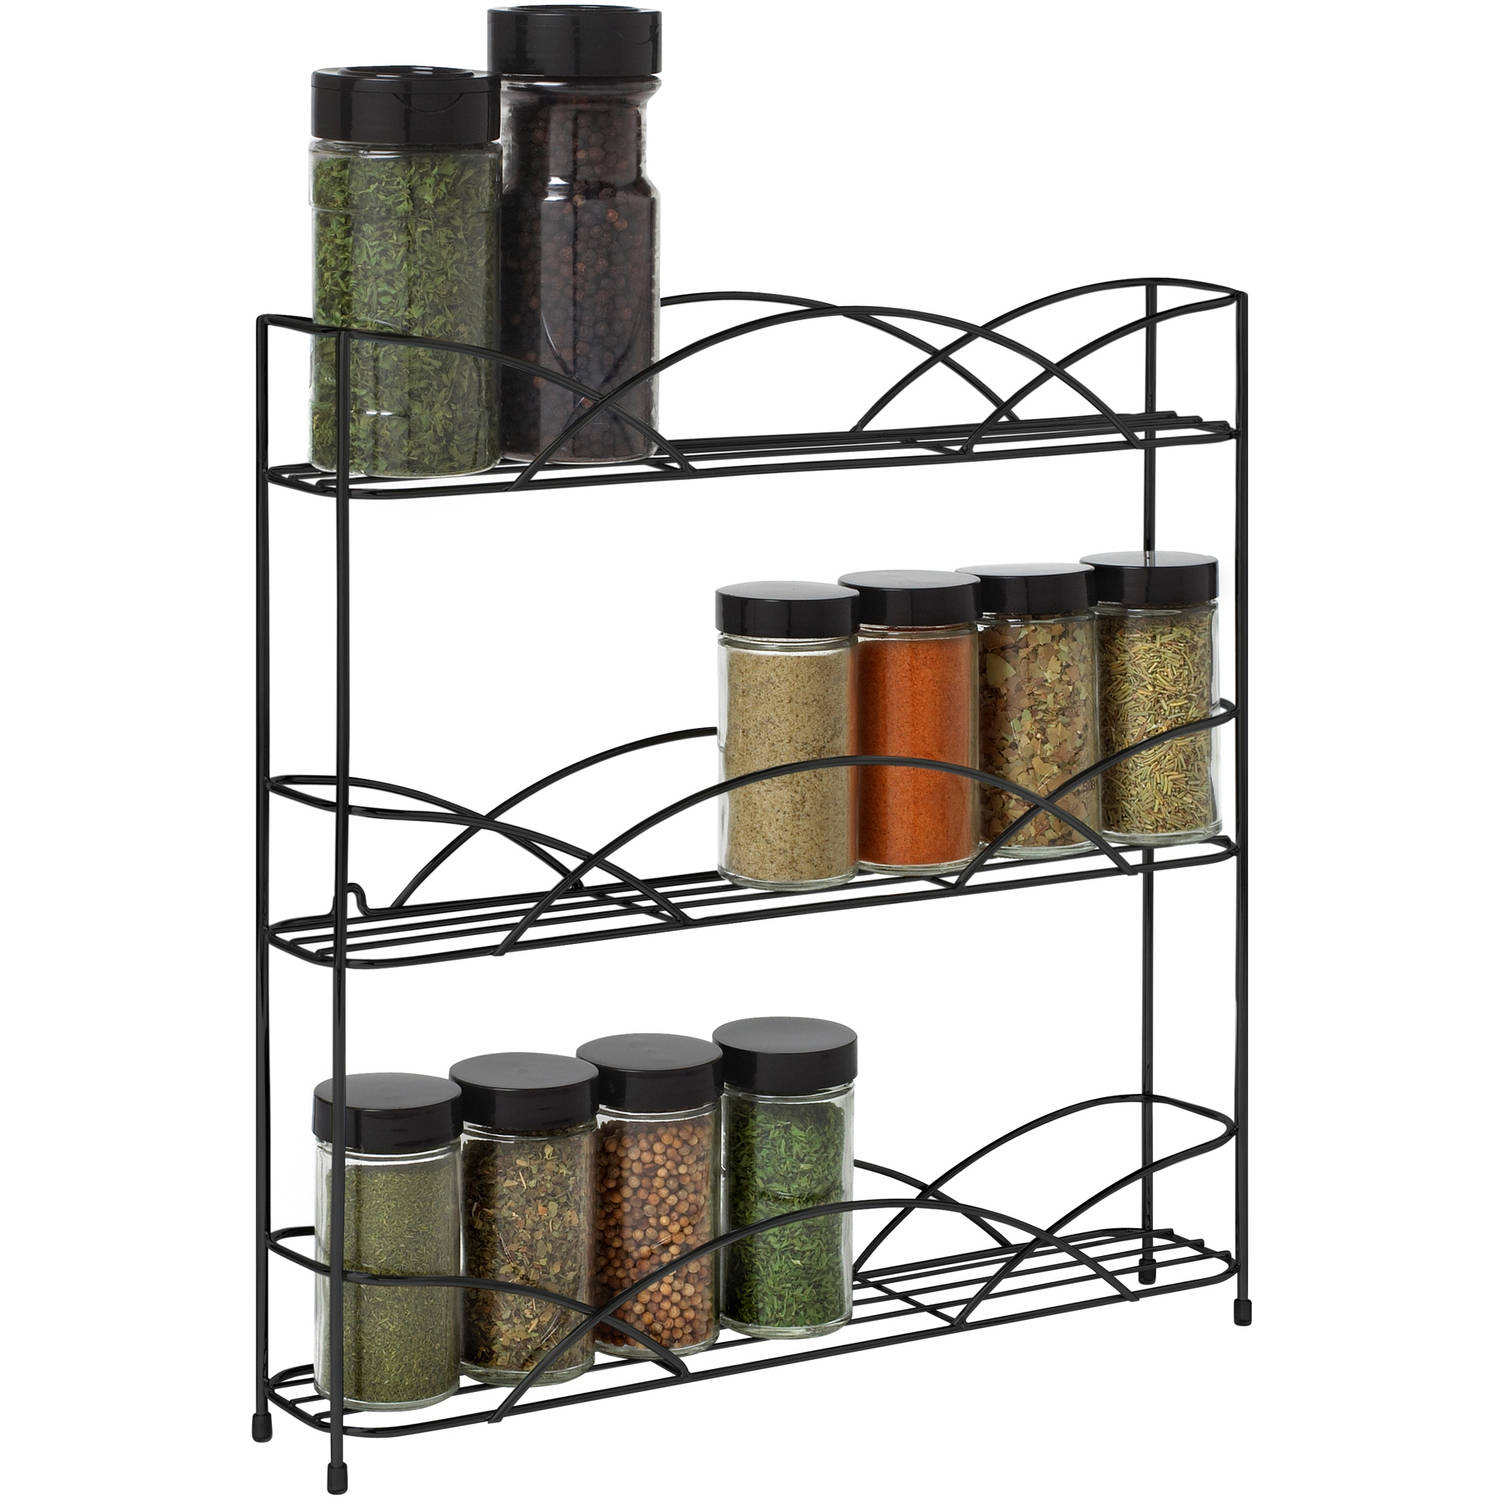 Spectrum Diversified Designs Countertop 3-Tier Spice Rack, Black